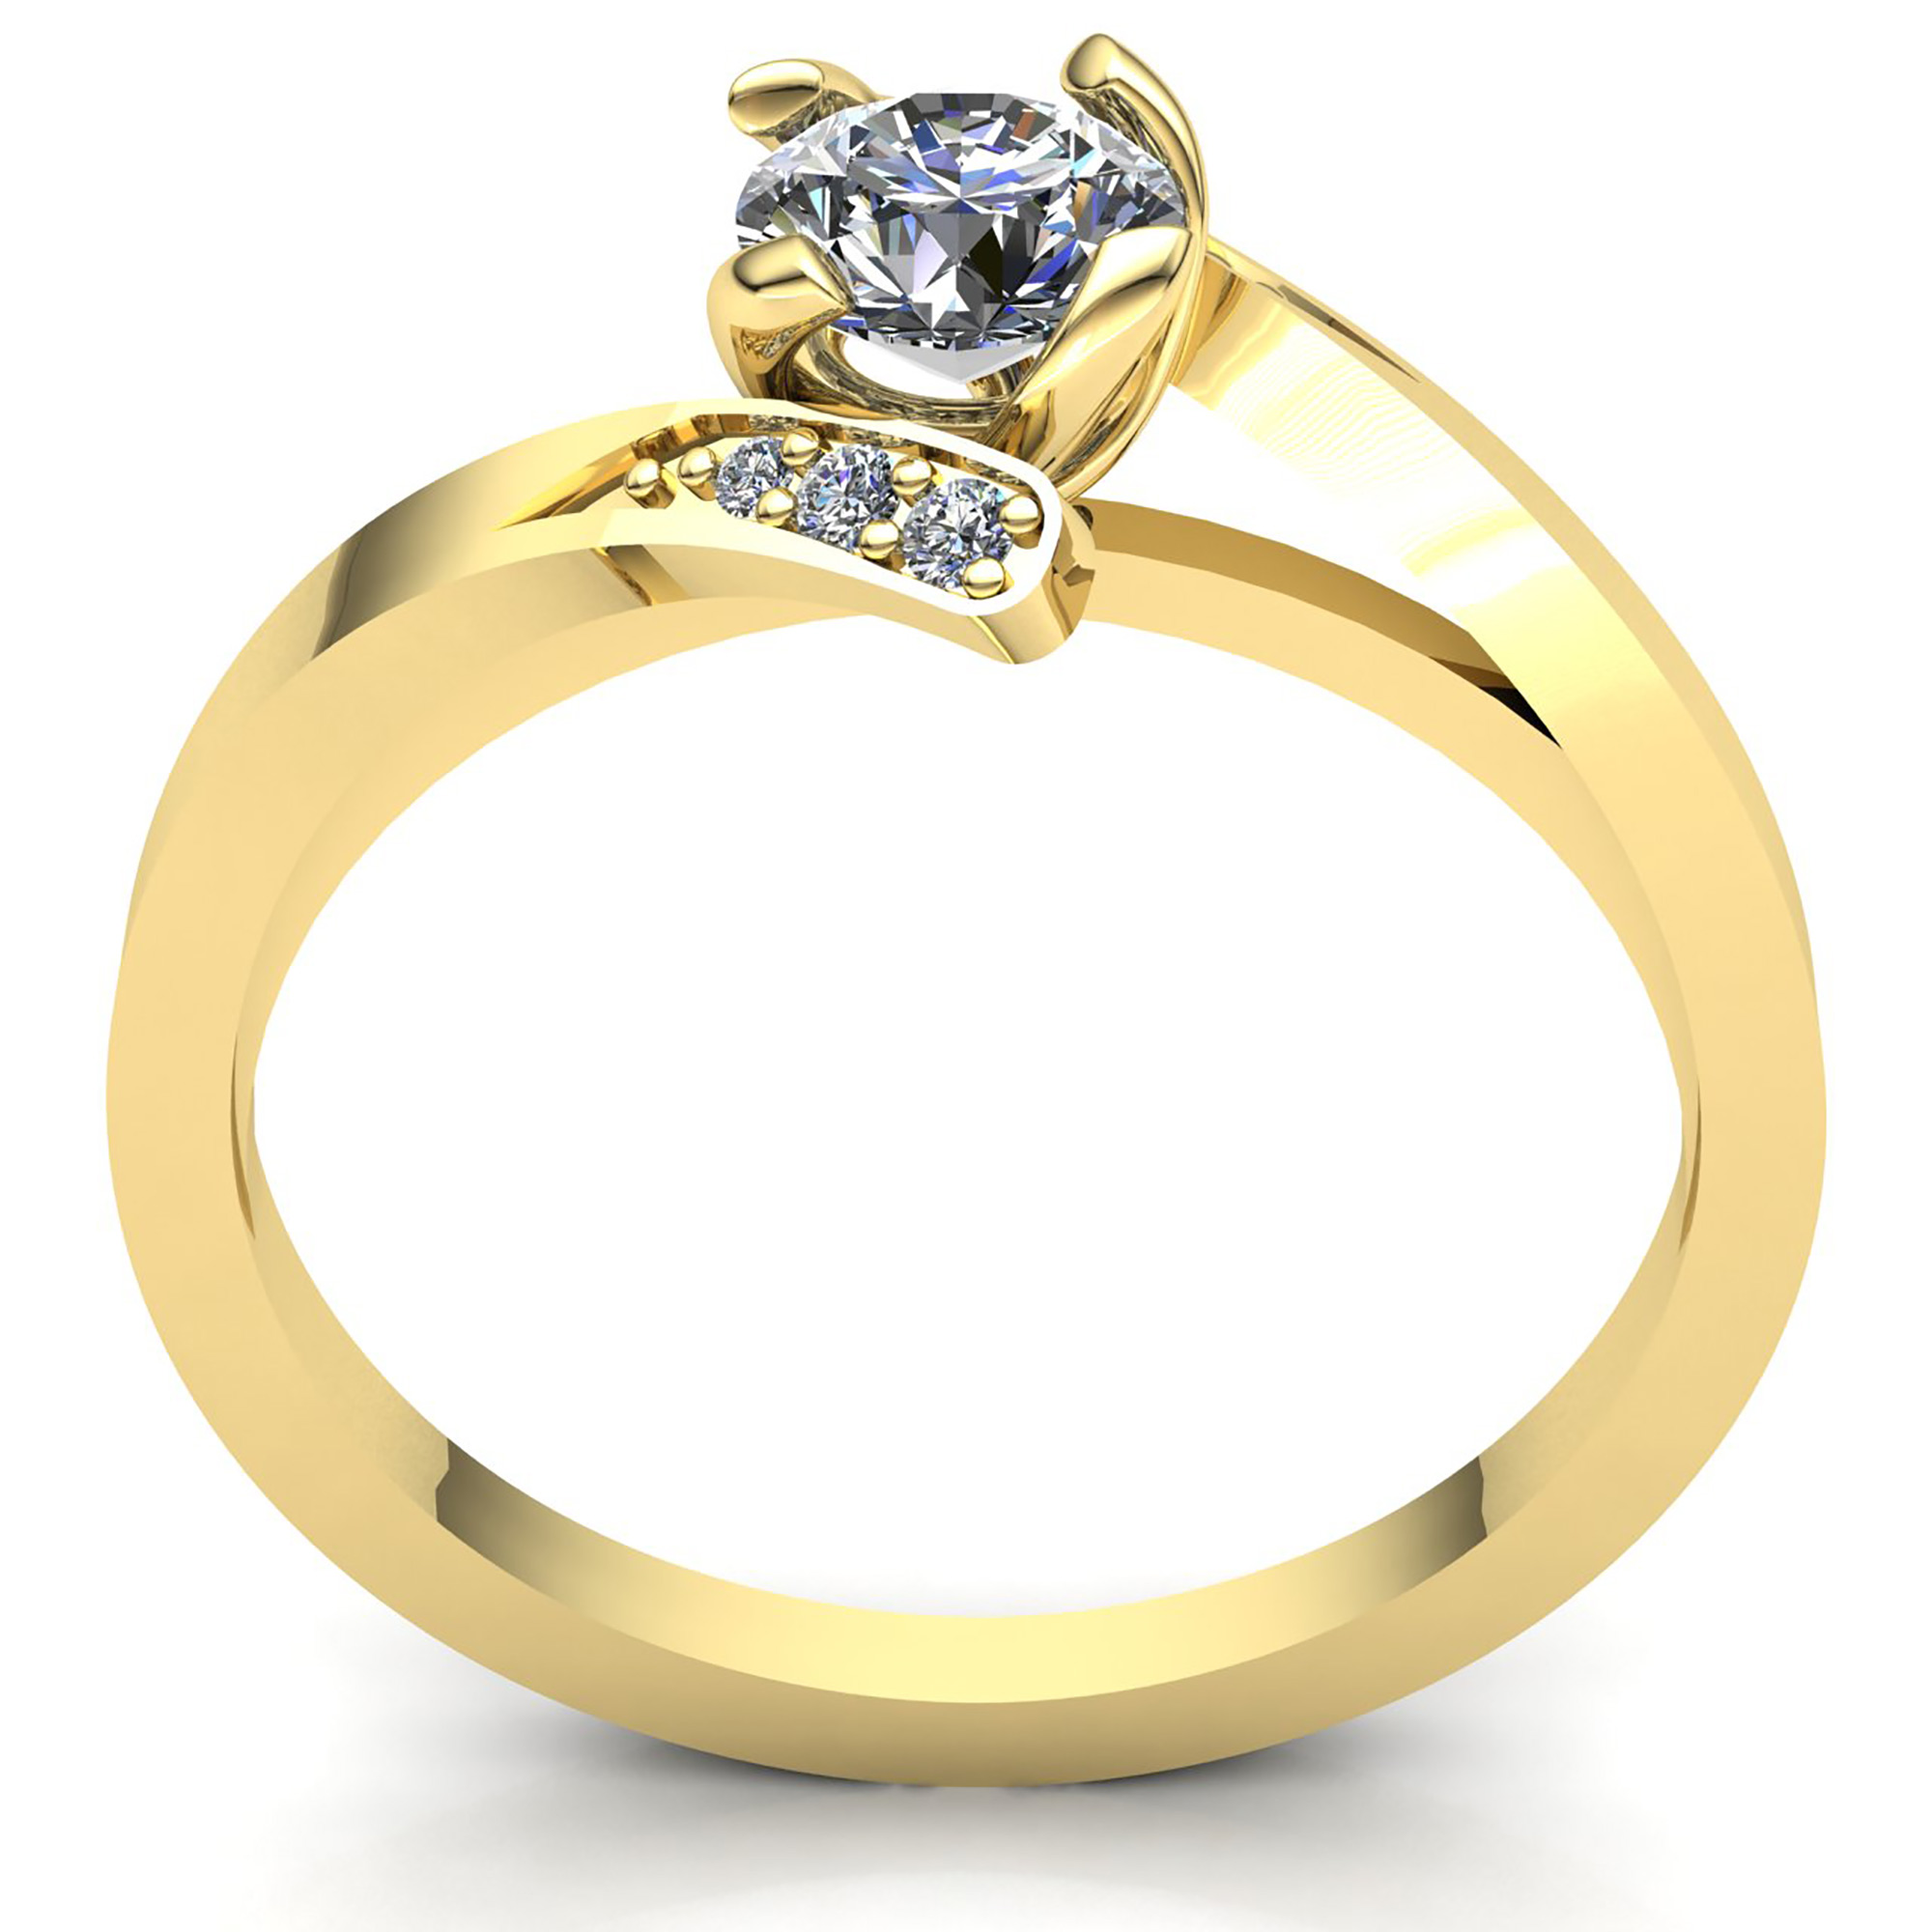 Ebay Uk Diamond Solitaire Rings